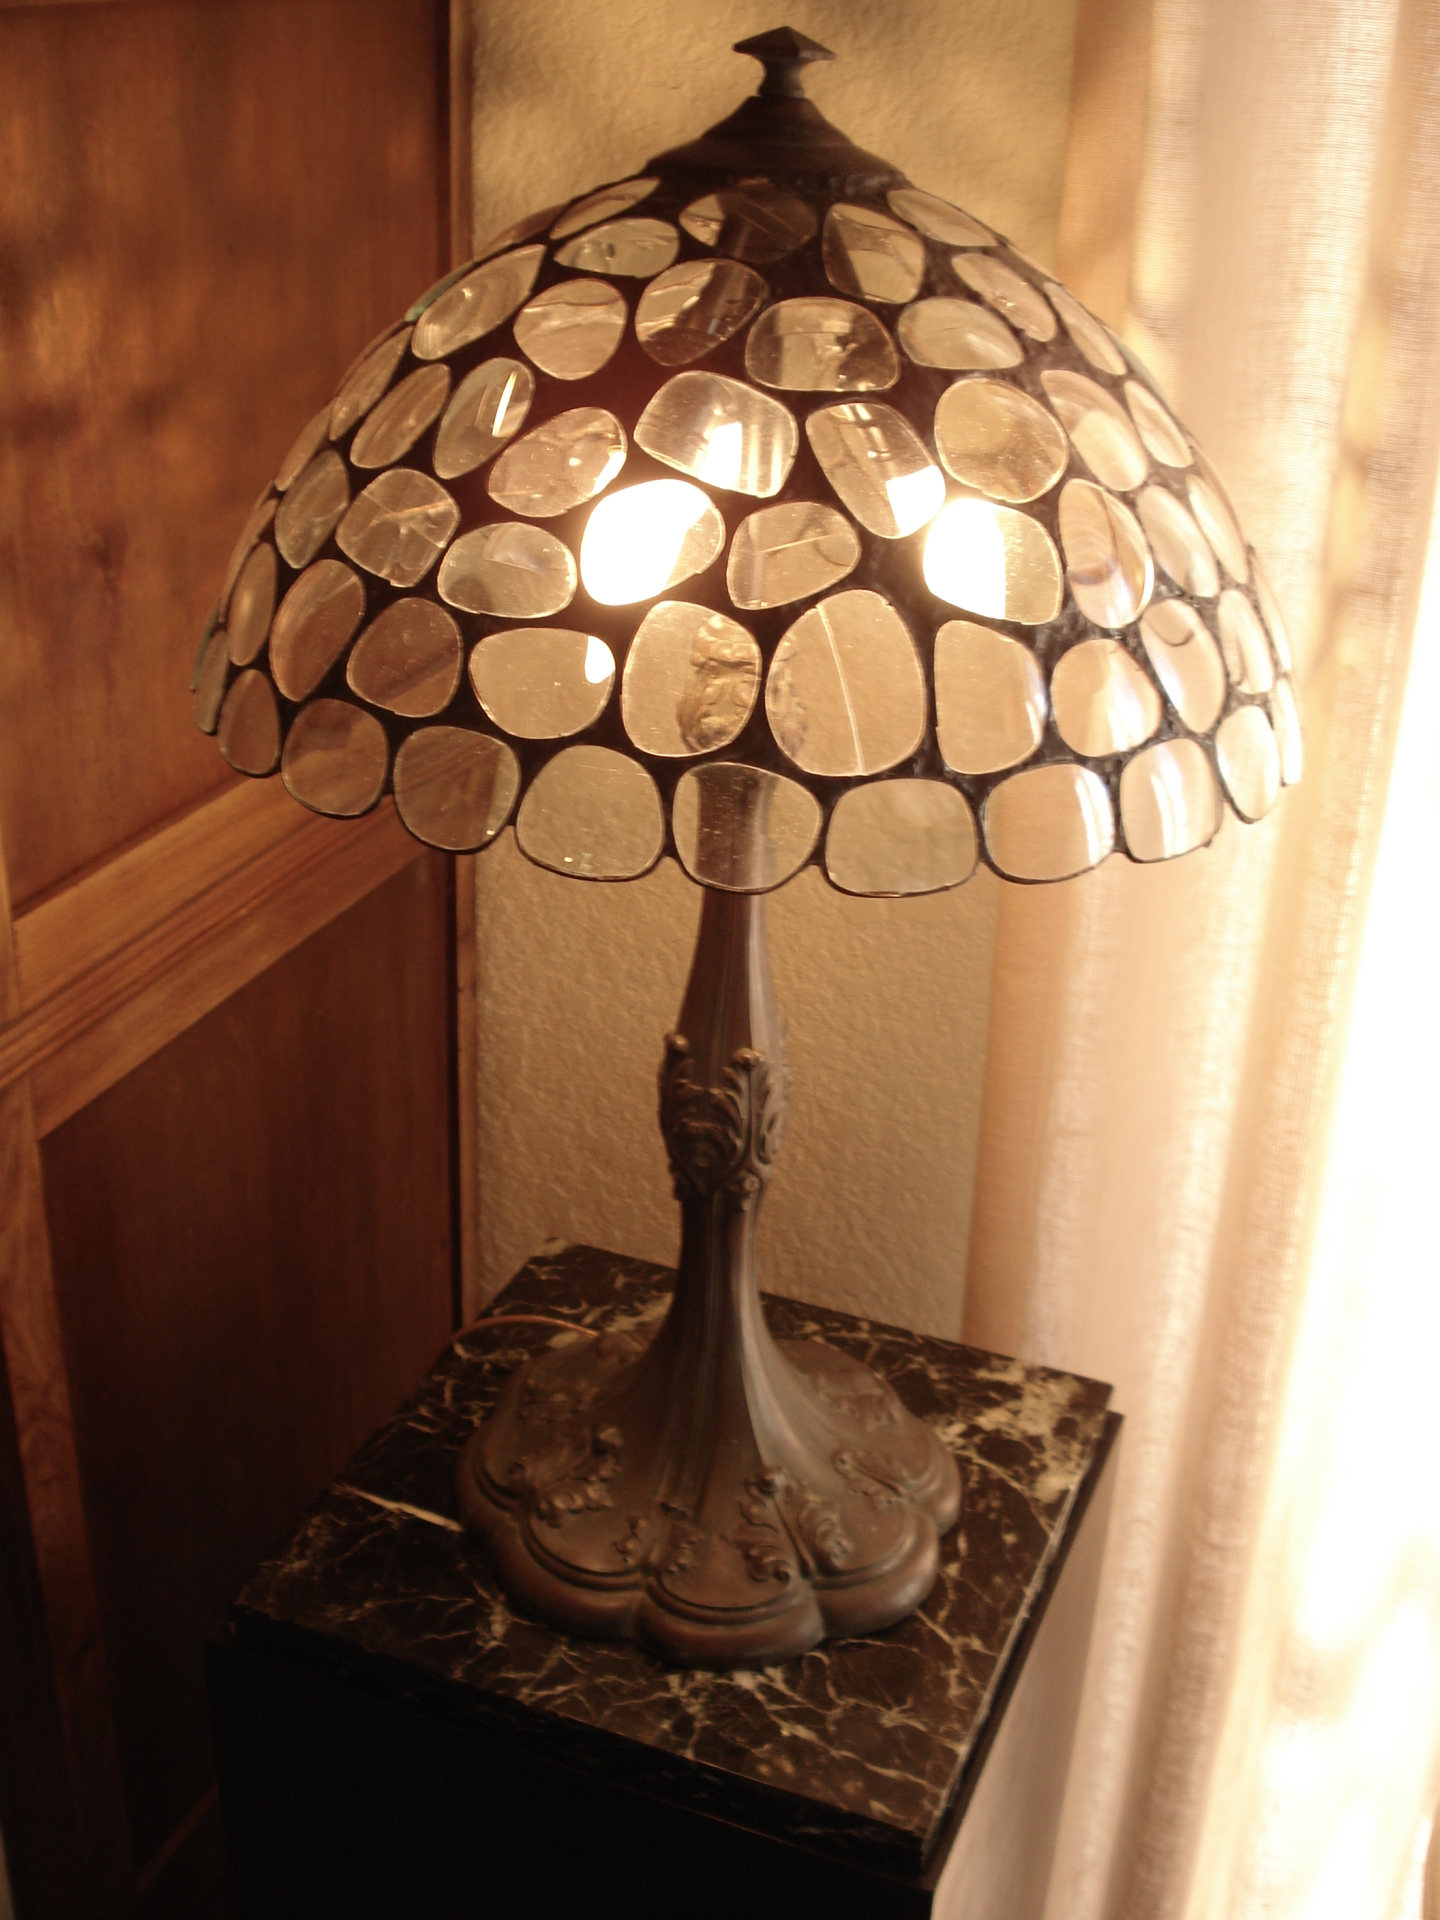 Eyeglass lampshade